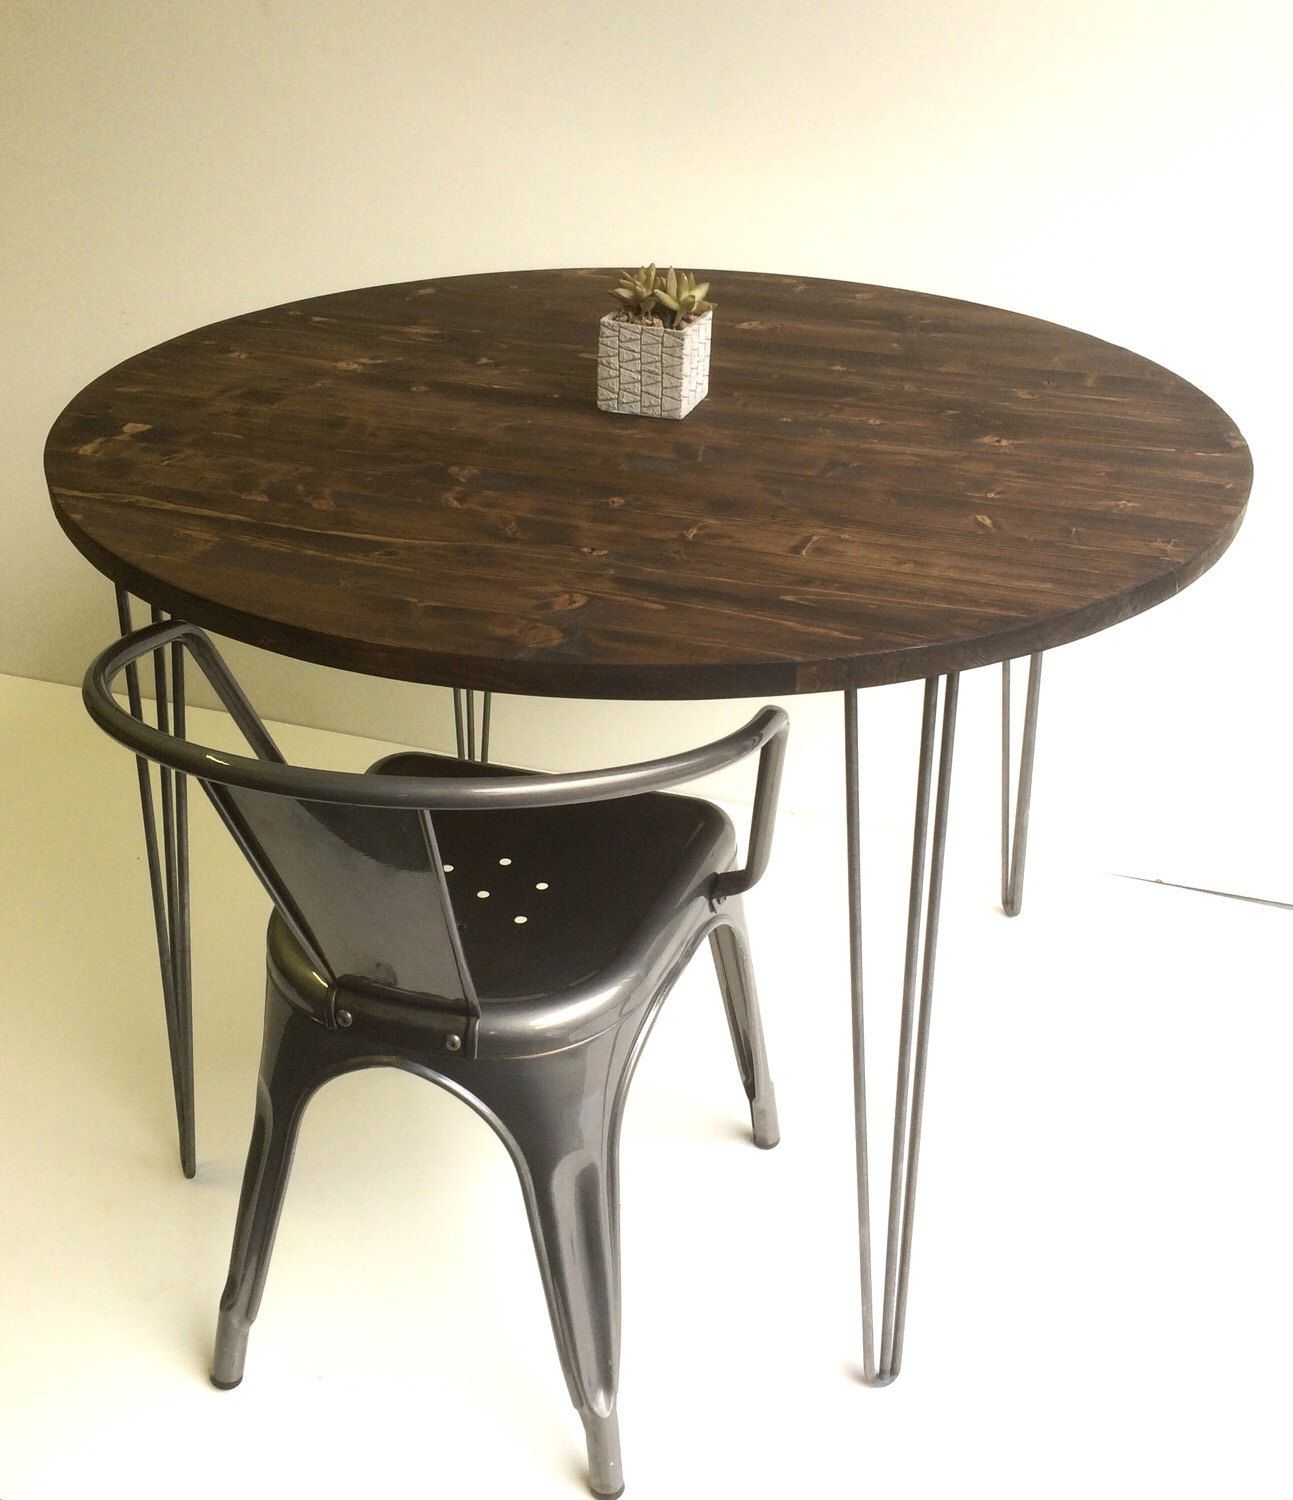 42 Round Hairpin Kitchen Table Industrial Modern Wood Table